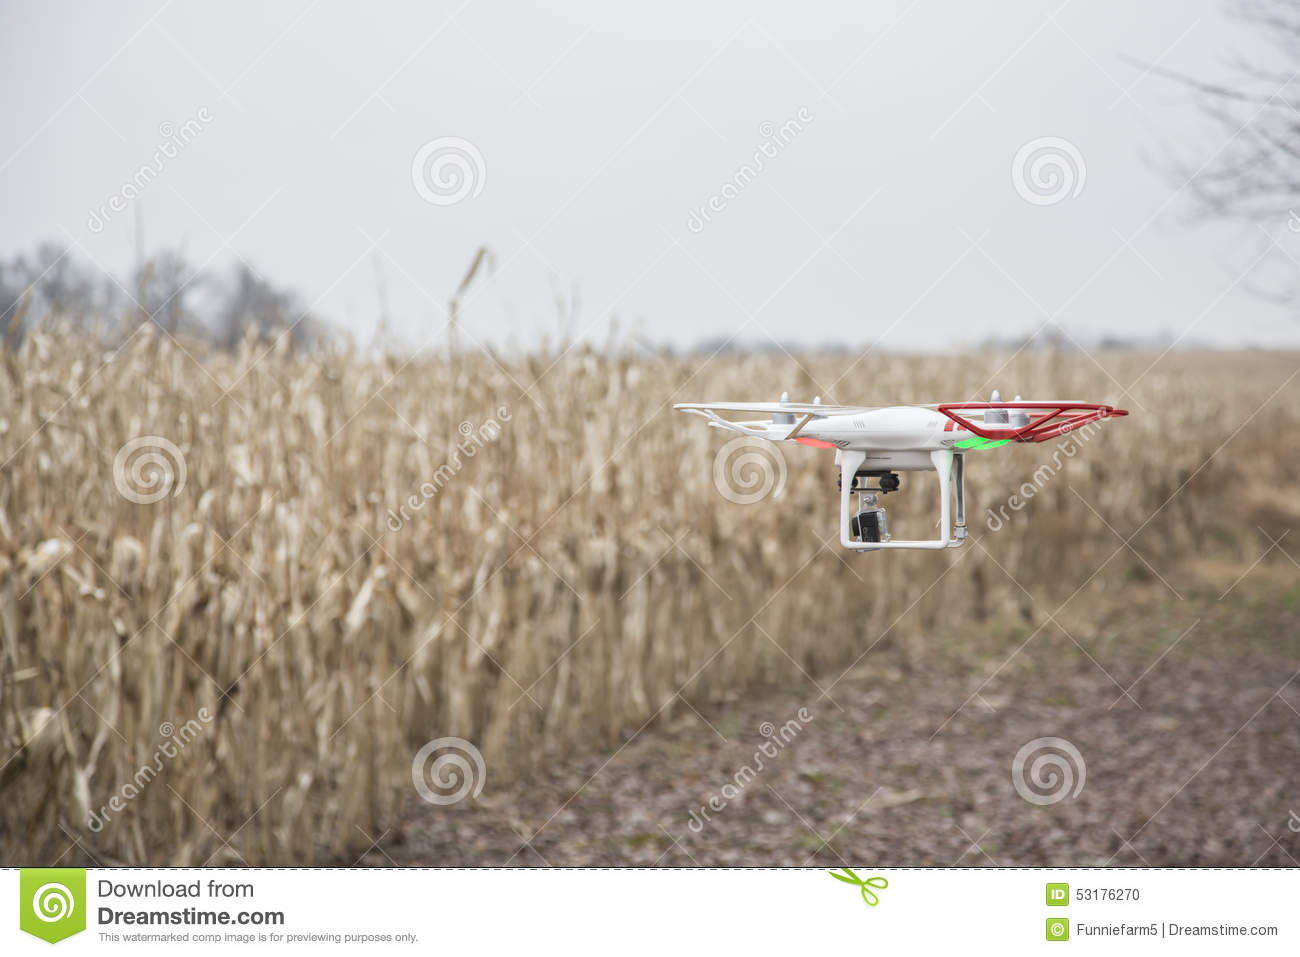 Editorial photo of a DJI Phantom drone in flight with a mounted GoPro Hero3 Black Edition